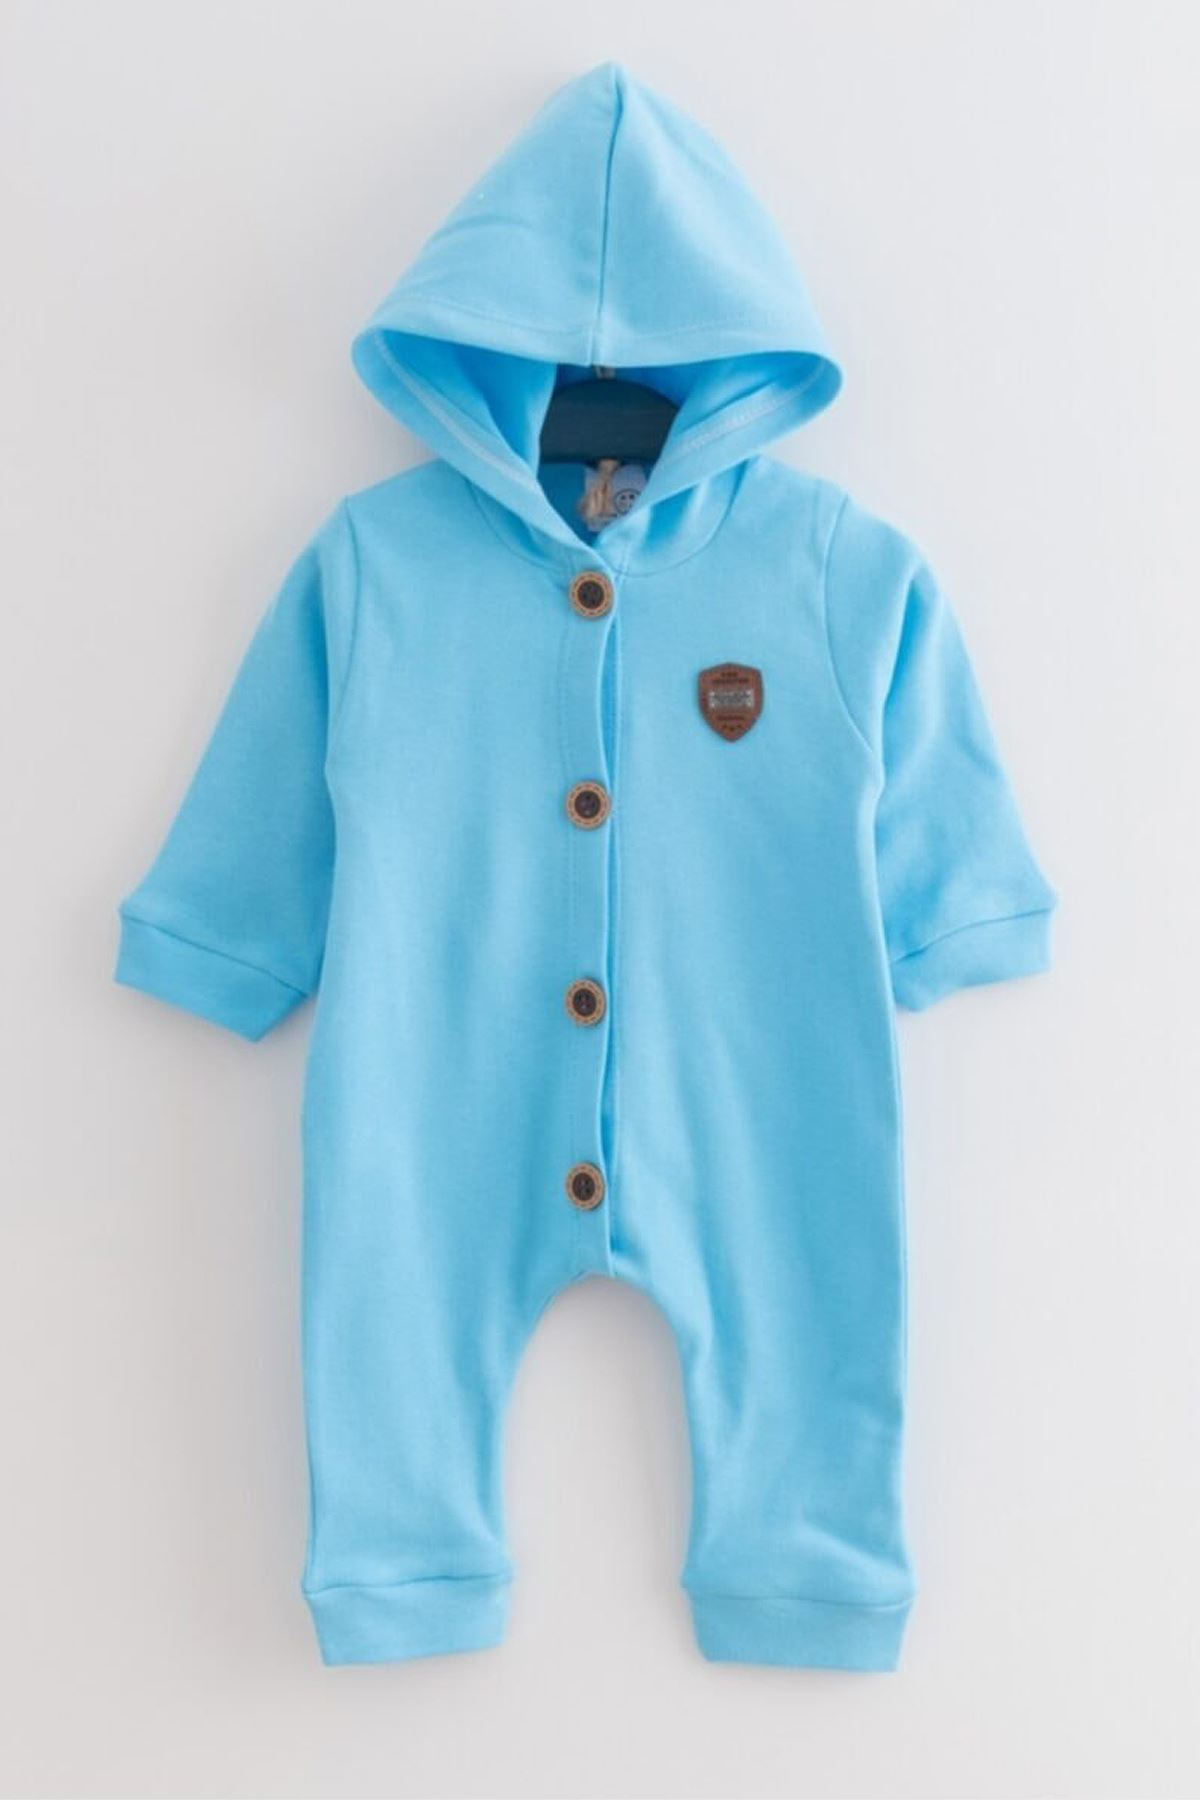 Blue Baby Boy Rompers Hooded Baby Boy Male Clothes Outfit Models Cotton Casual 2021 Kids Baby Fashion Style Models